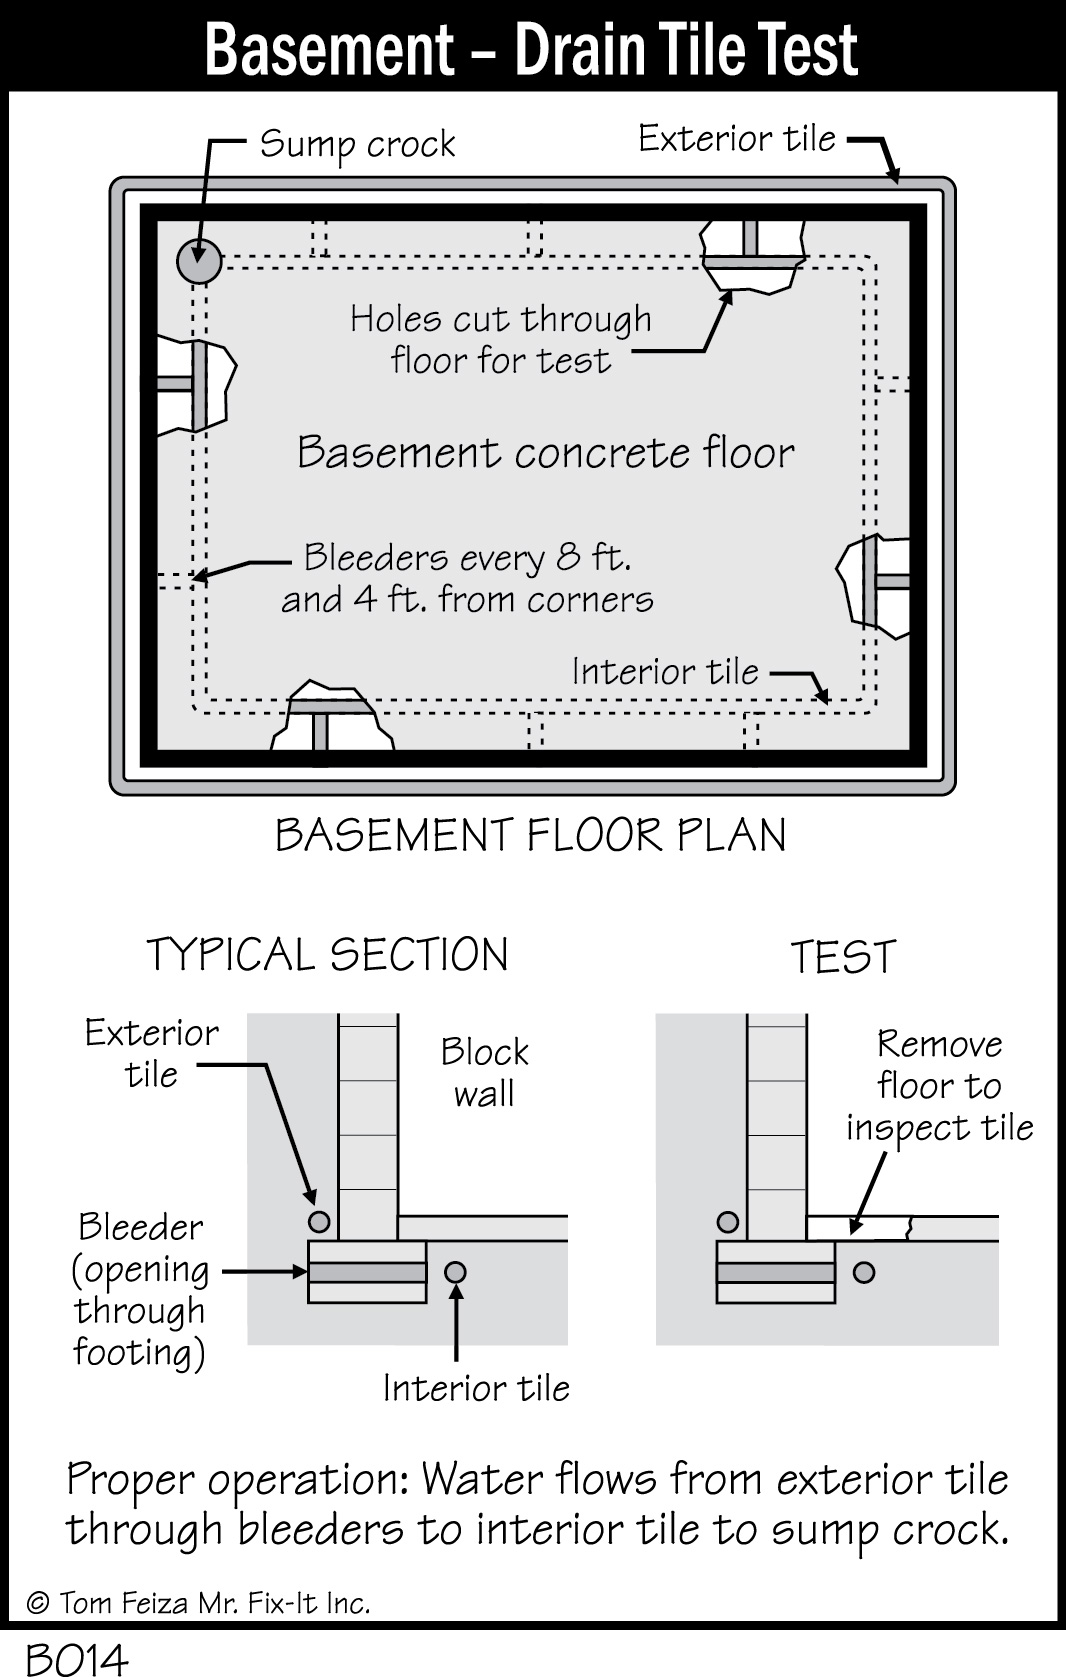 tile interior basement drains drain and system watch pump miradrain water sump management window trench well